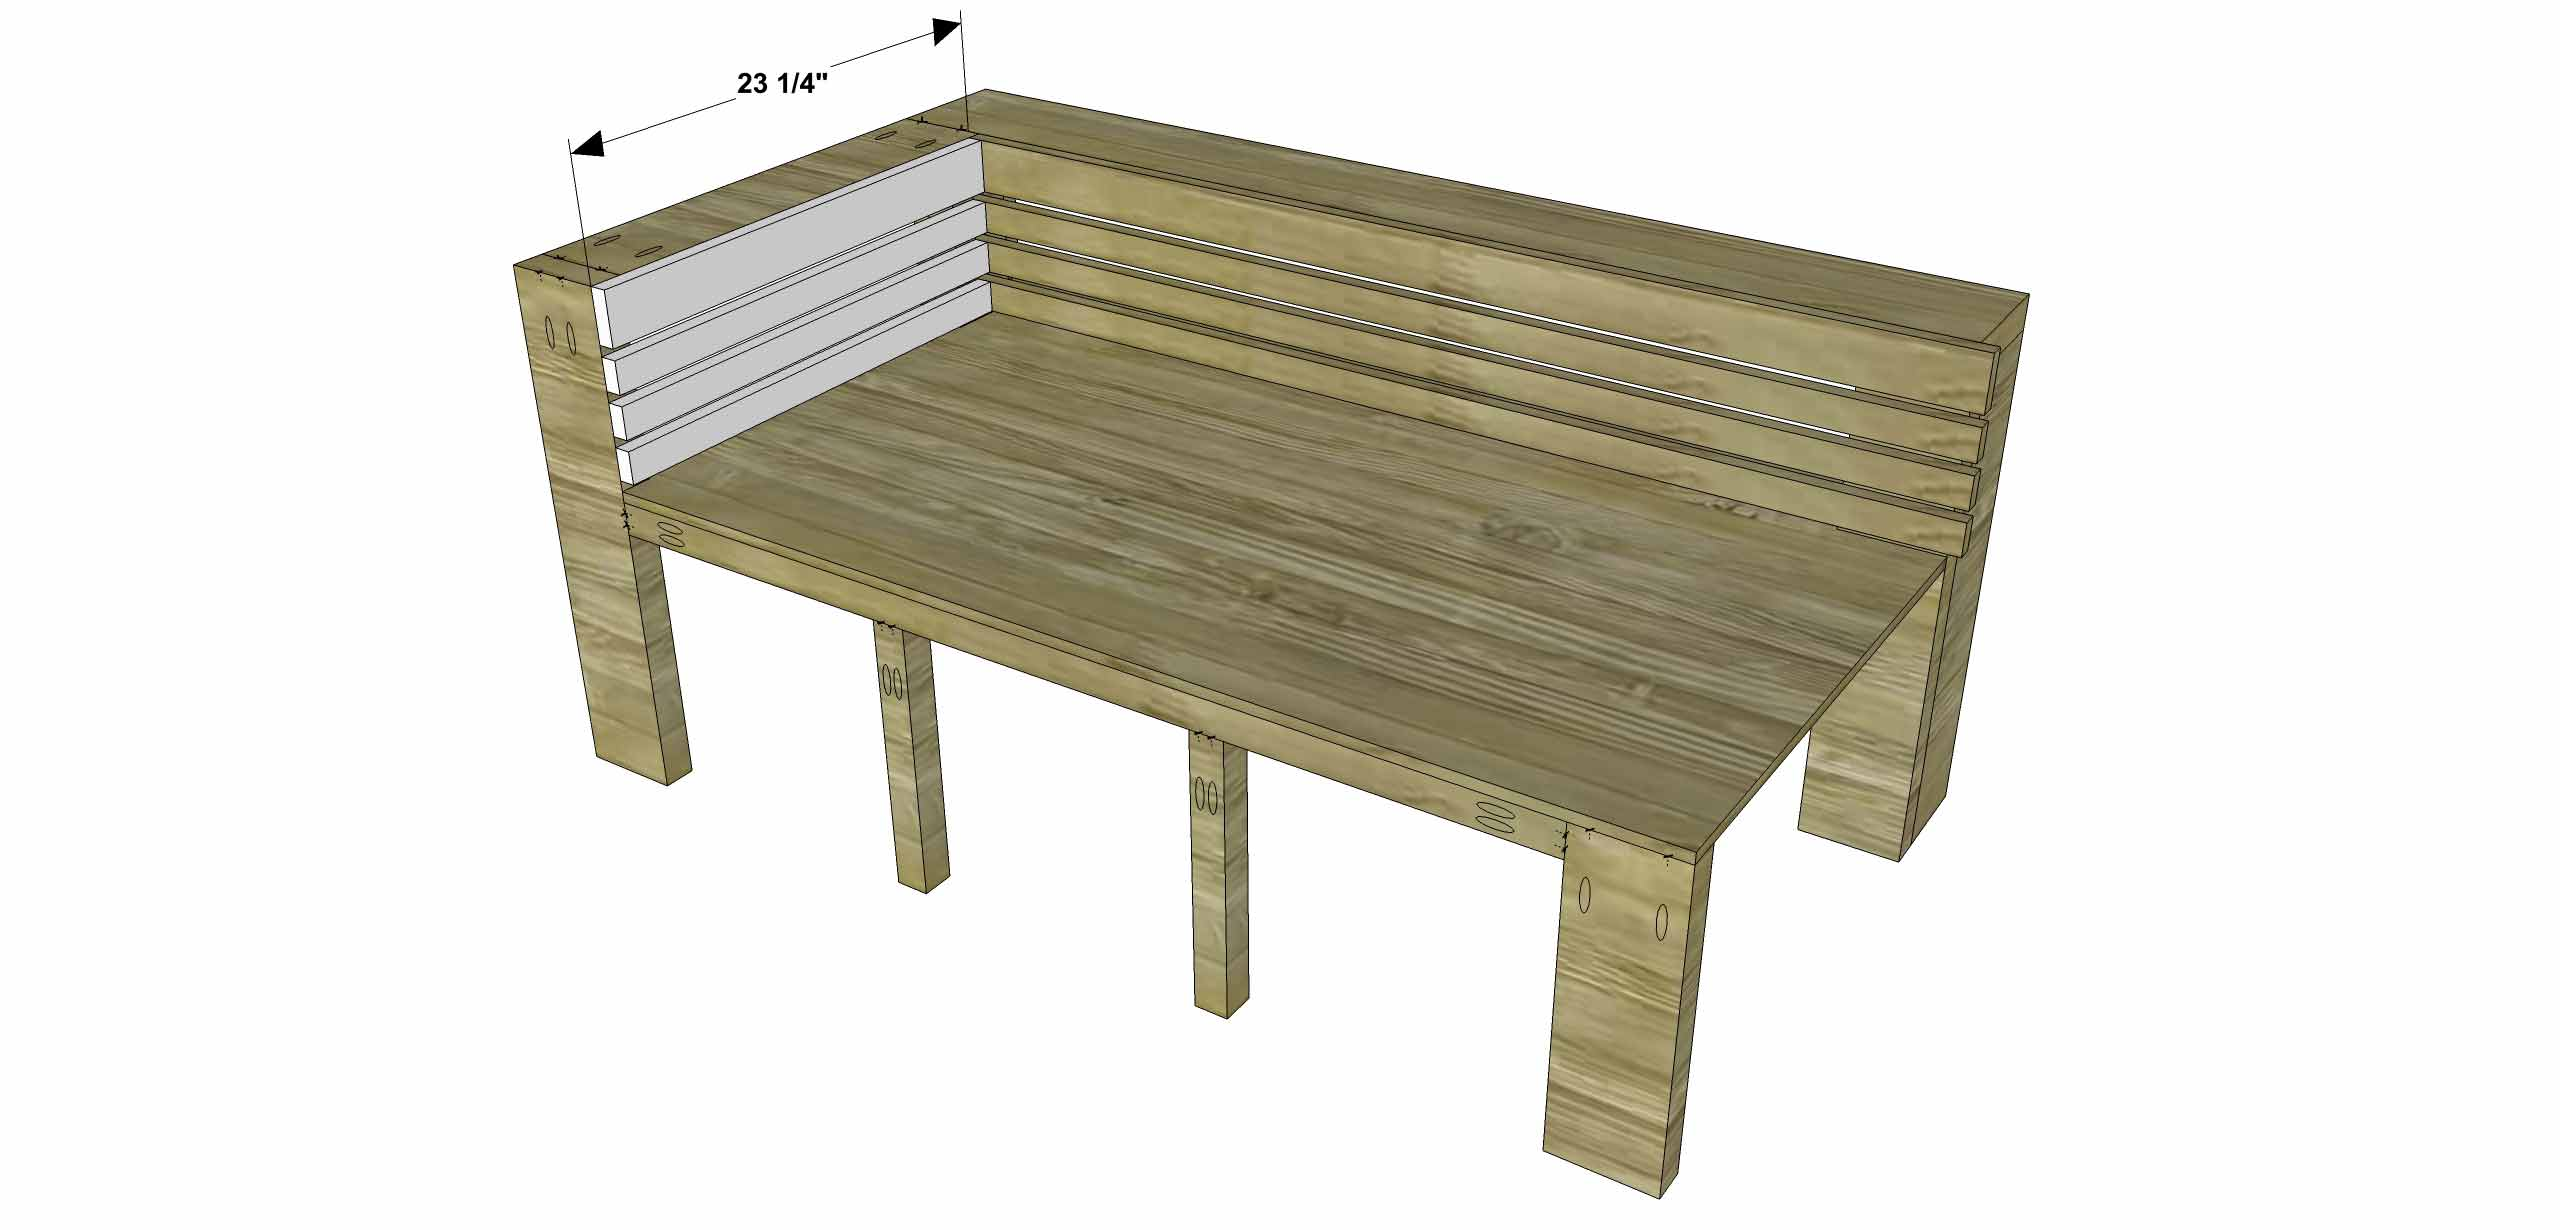 Using Outdoor Furniture Indoors Free Diy Furniture Plans How To Build An Indoor Outdoor